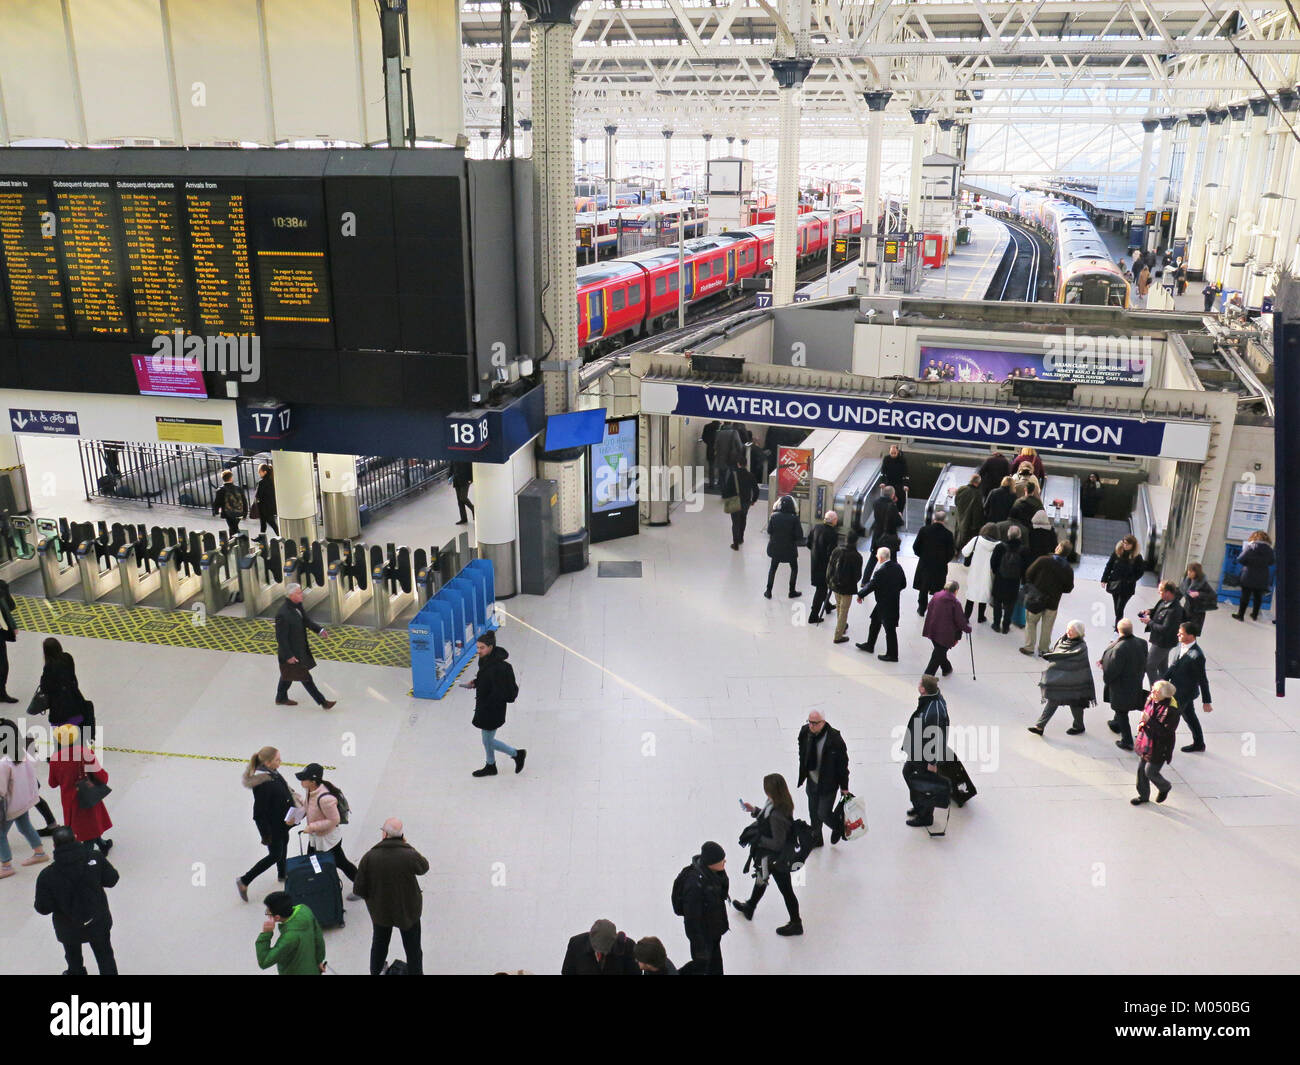 Waterloo Underground Station alongside the trains in London - Stock Image